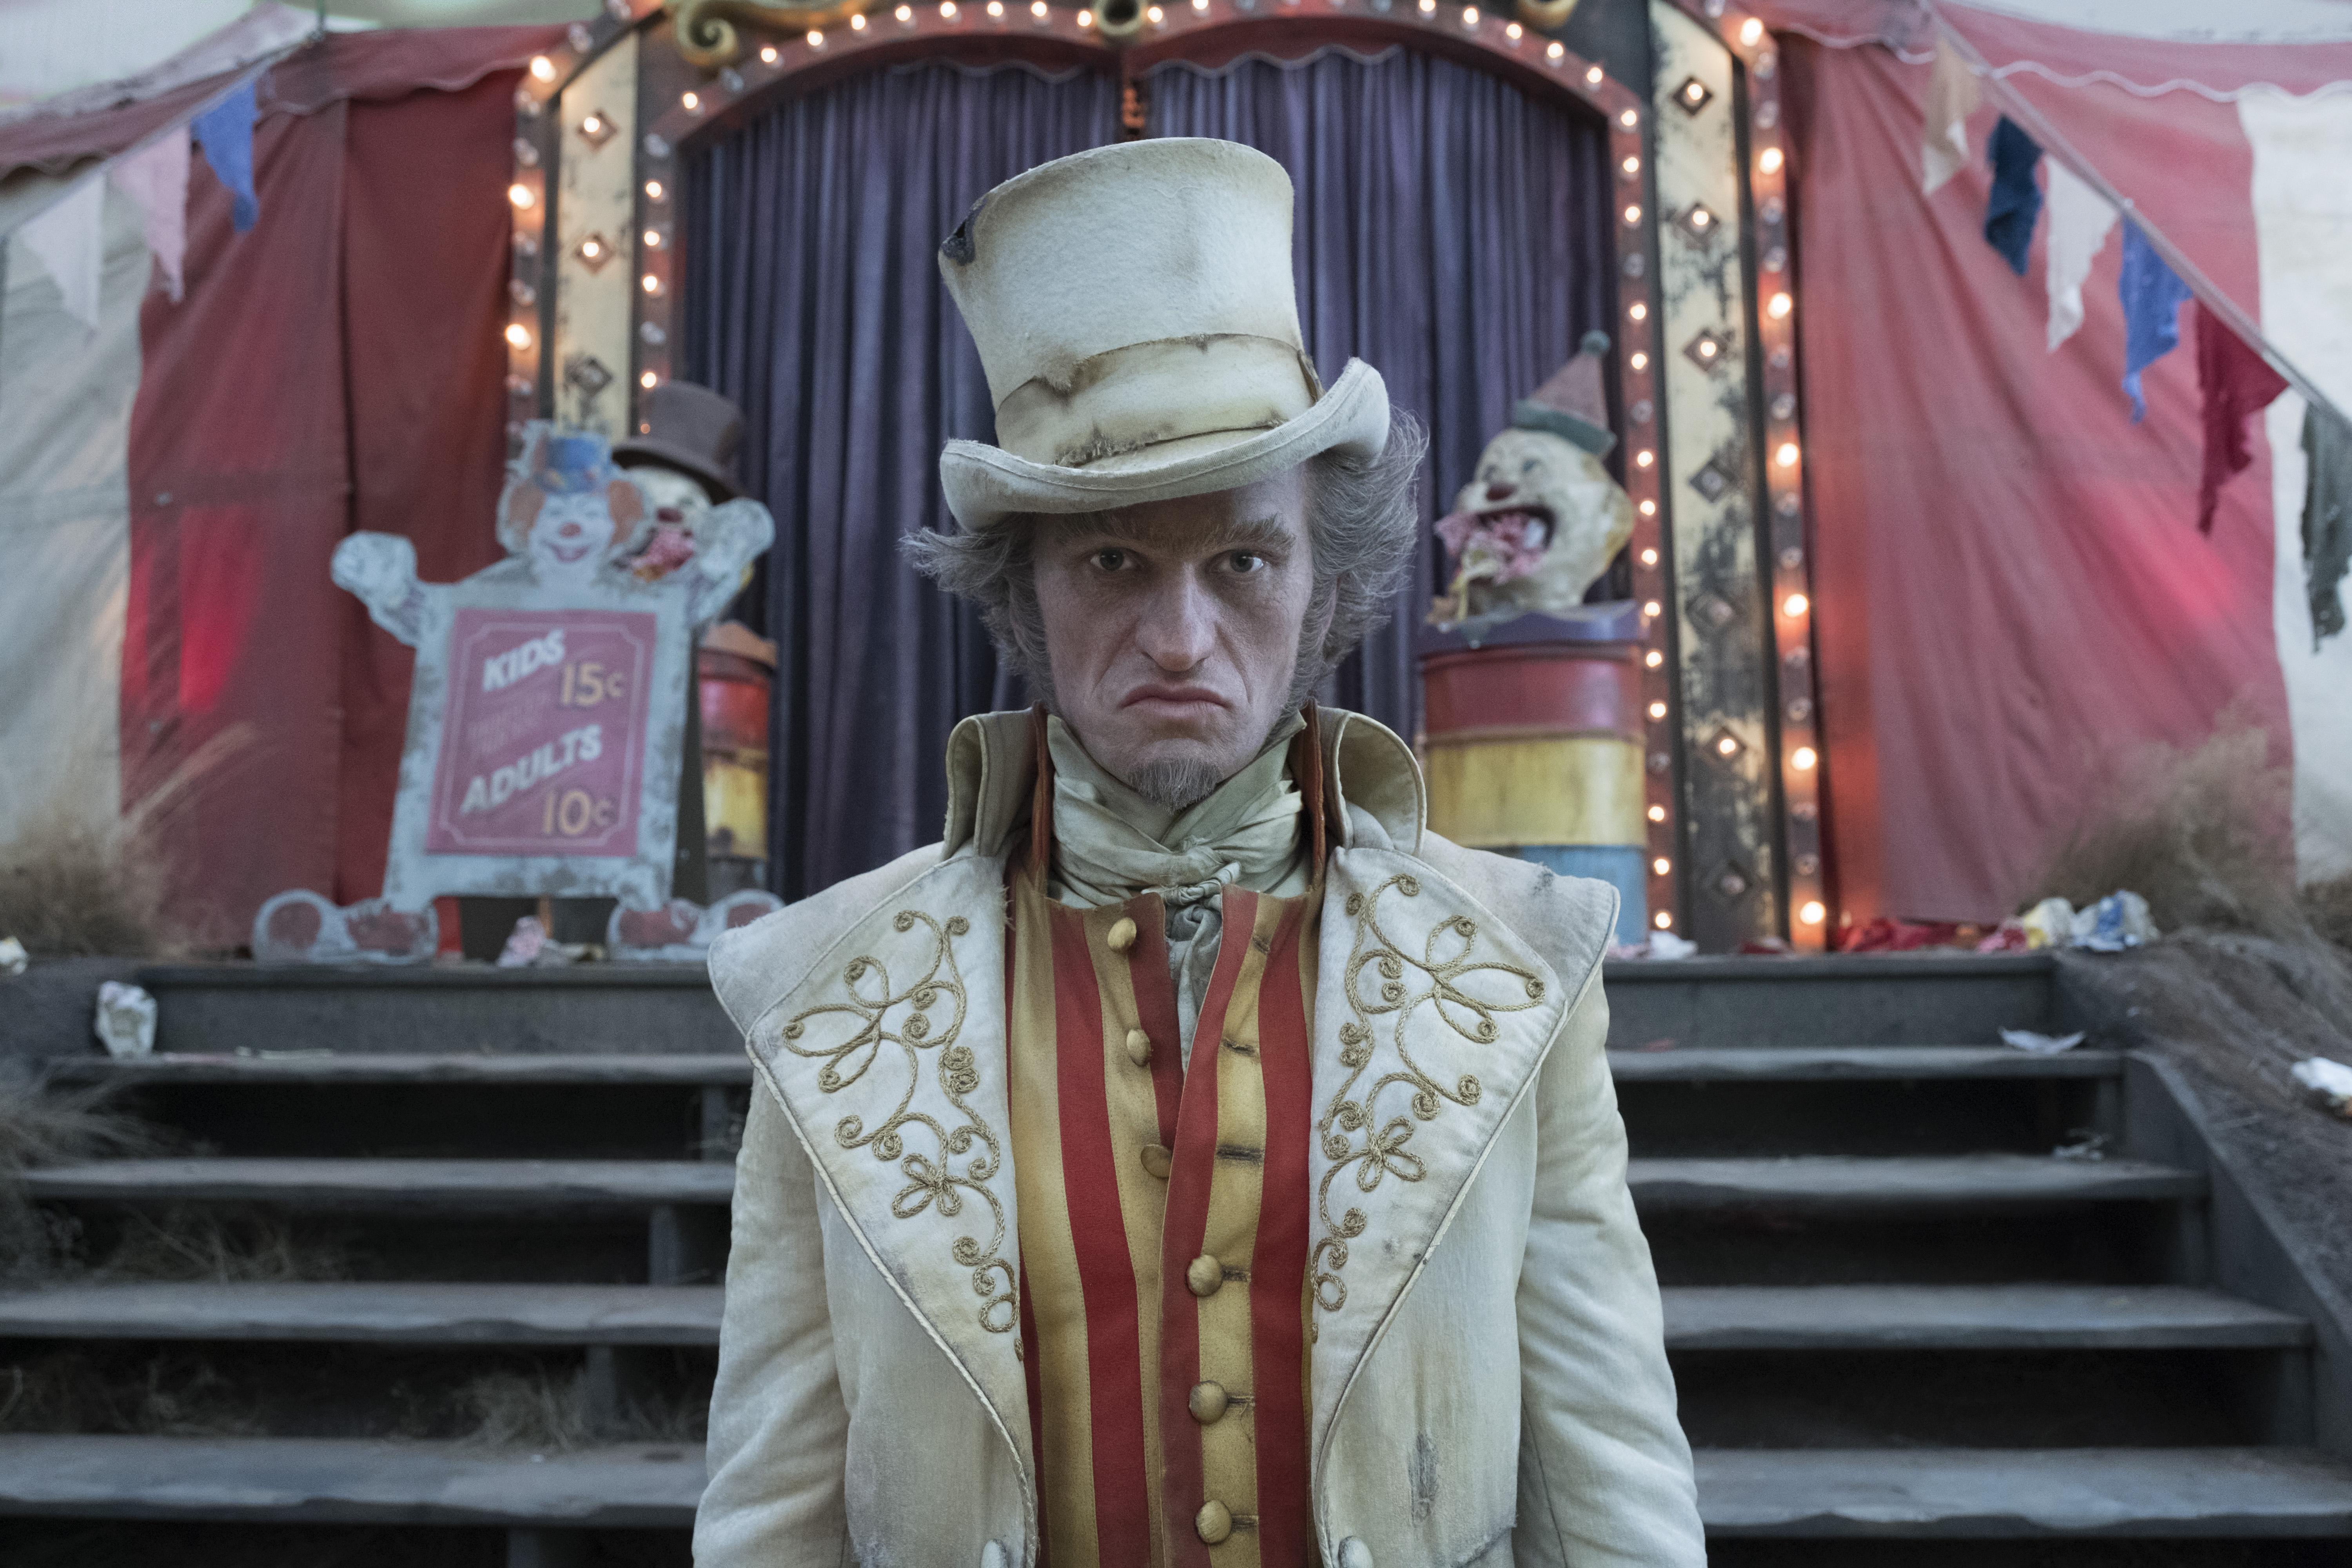 best series on netflix to binge - a series of unfortunate events